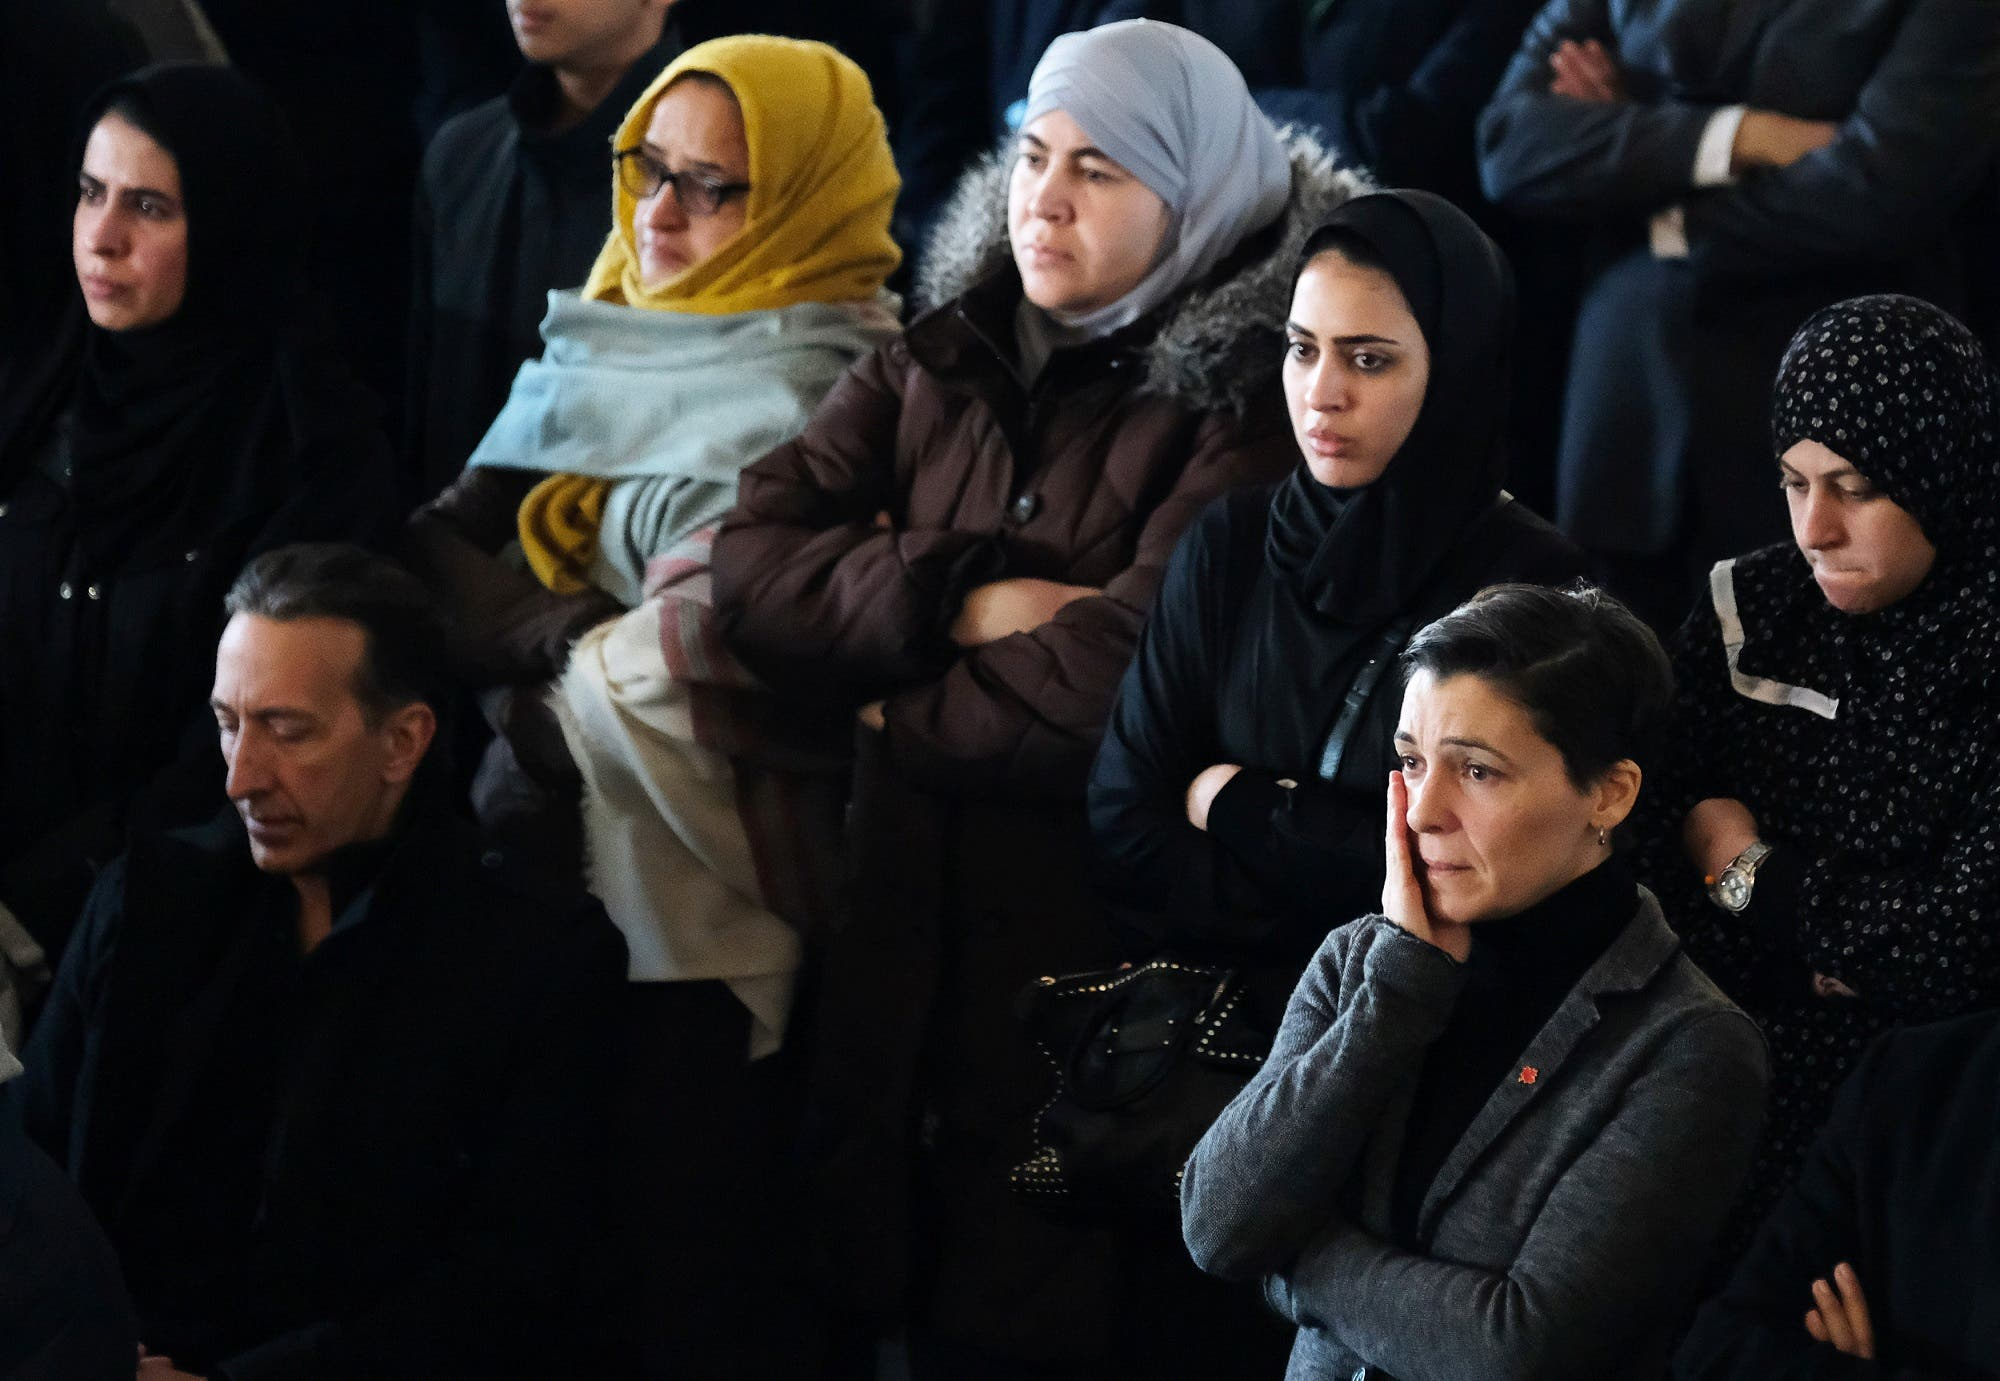 Mourners listen during the funeral service for a Syrian refugee family who lost seven children in a fire. (Reuters)